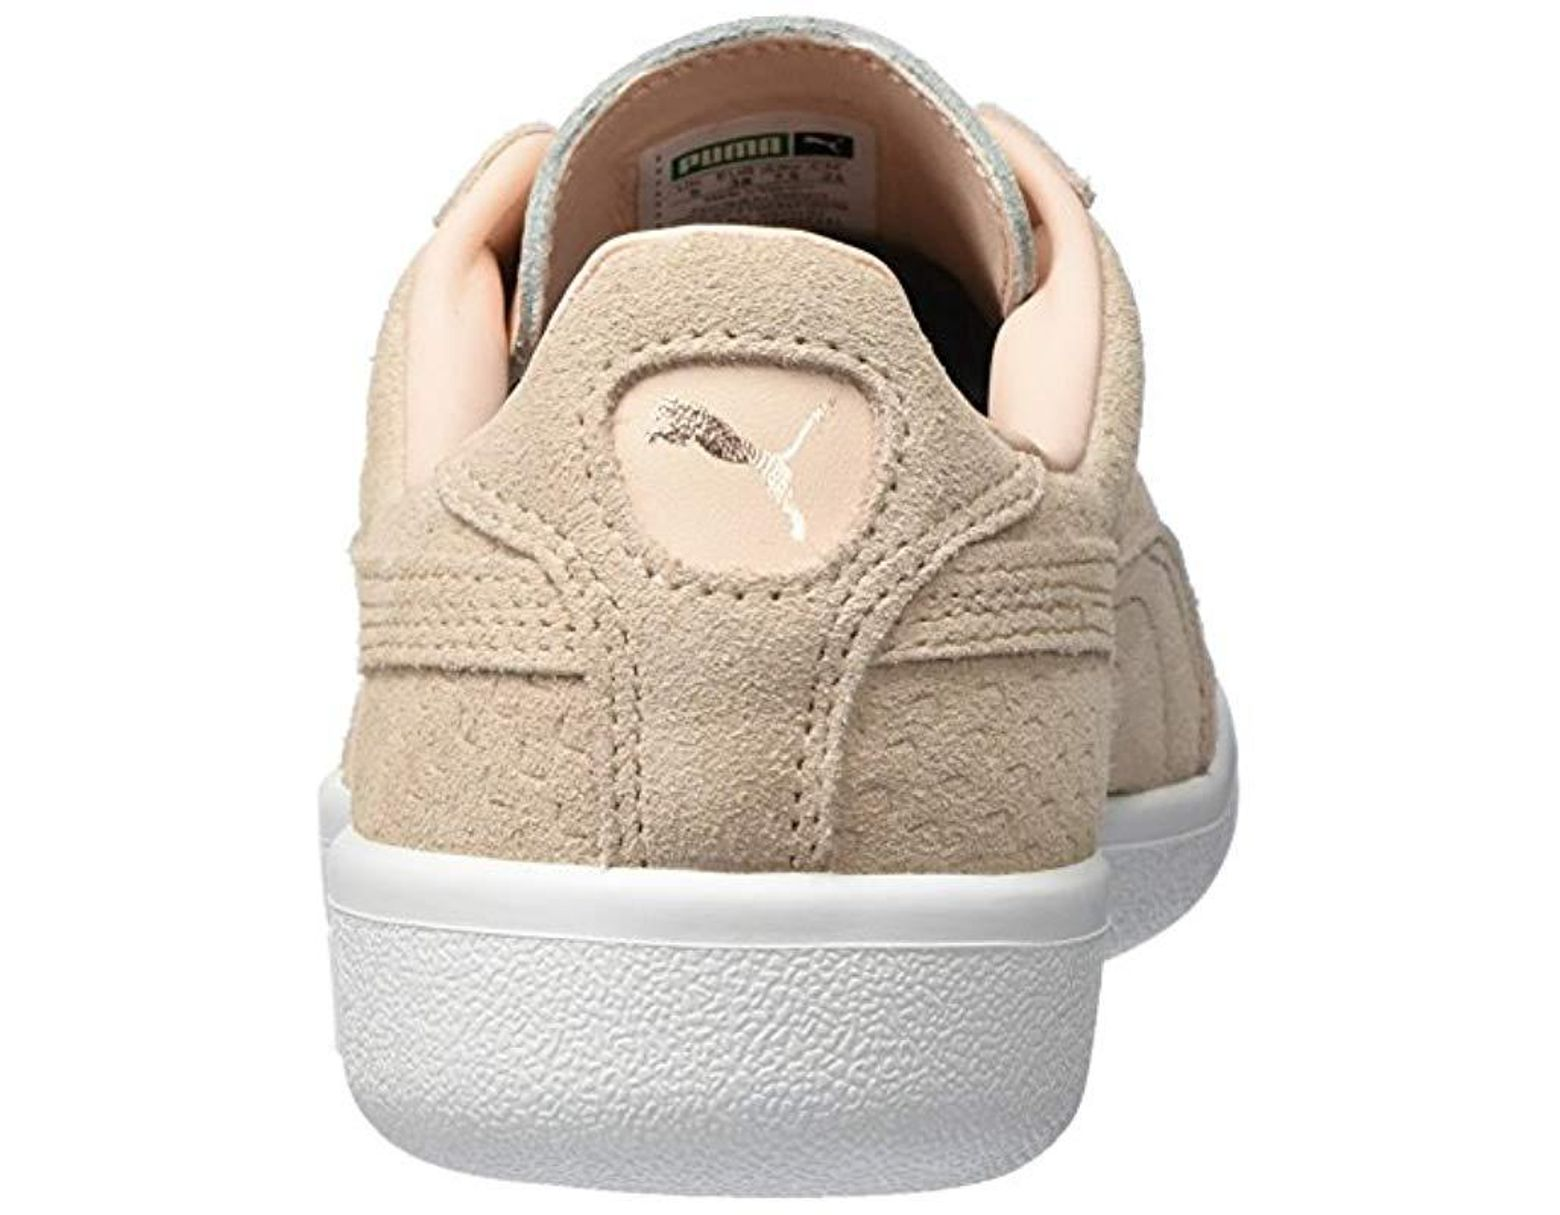 b774e474959b PUMA Madrid Perf Suede Wn s Trainers in Natural - Lyst